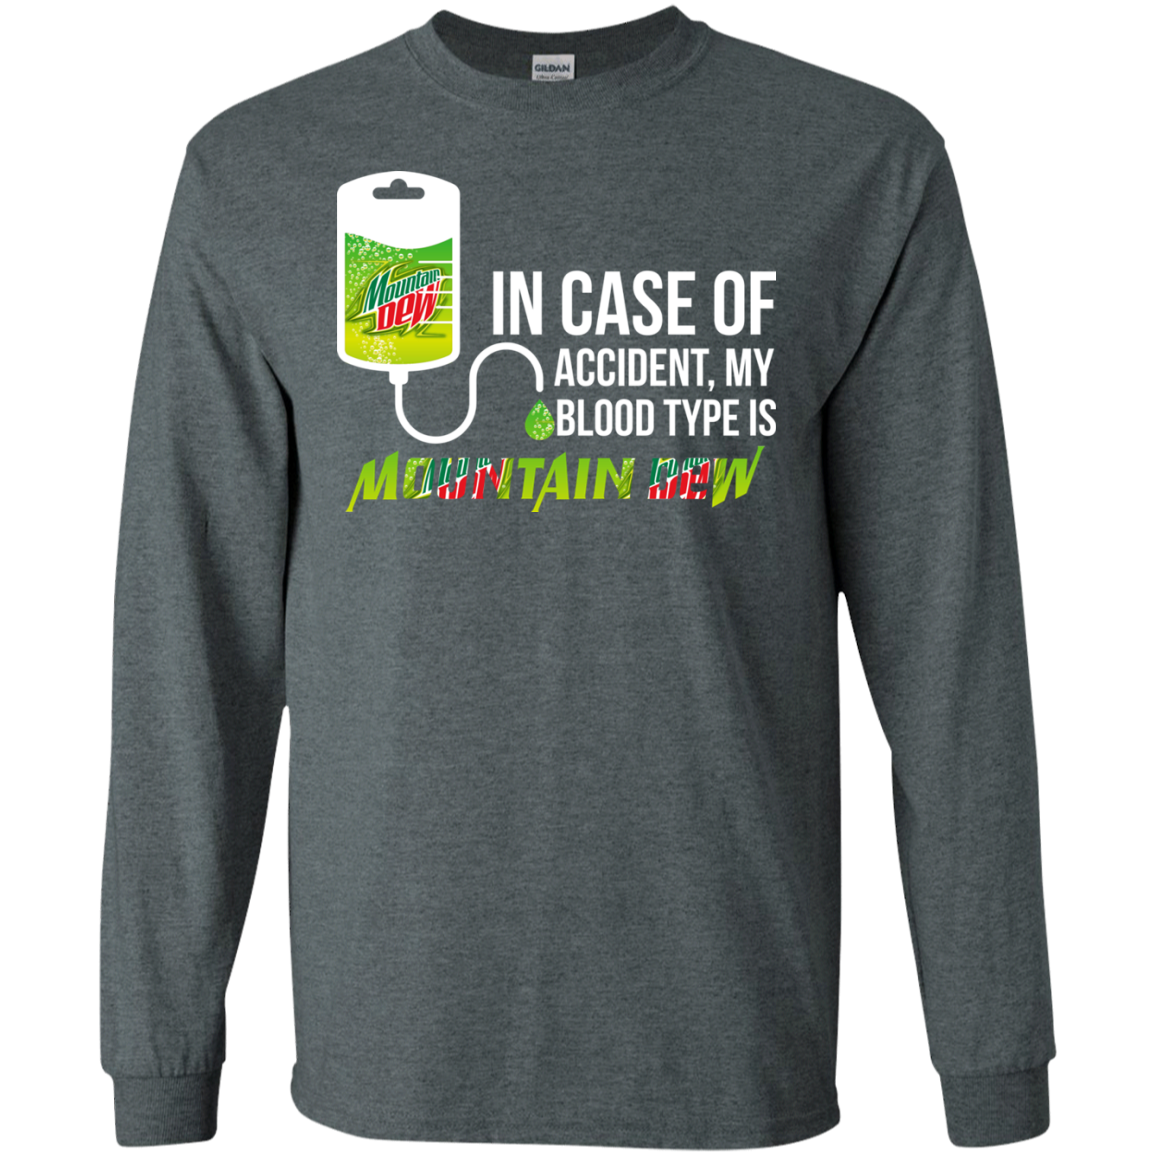 e6648f92a In Case Of Accident My Blood Type Is Mountain Dew t shirt, long sleeve,